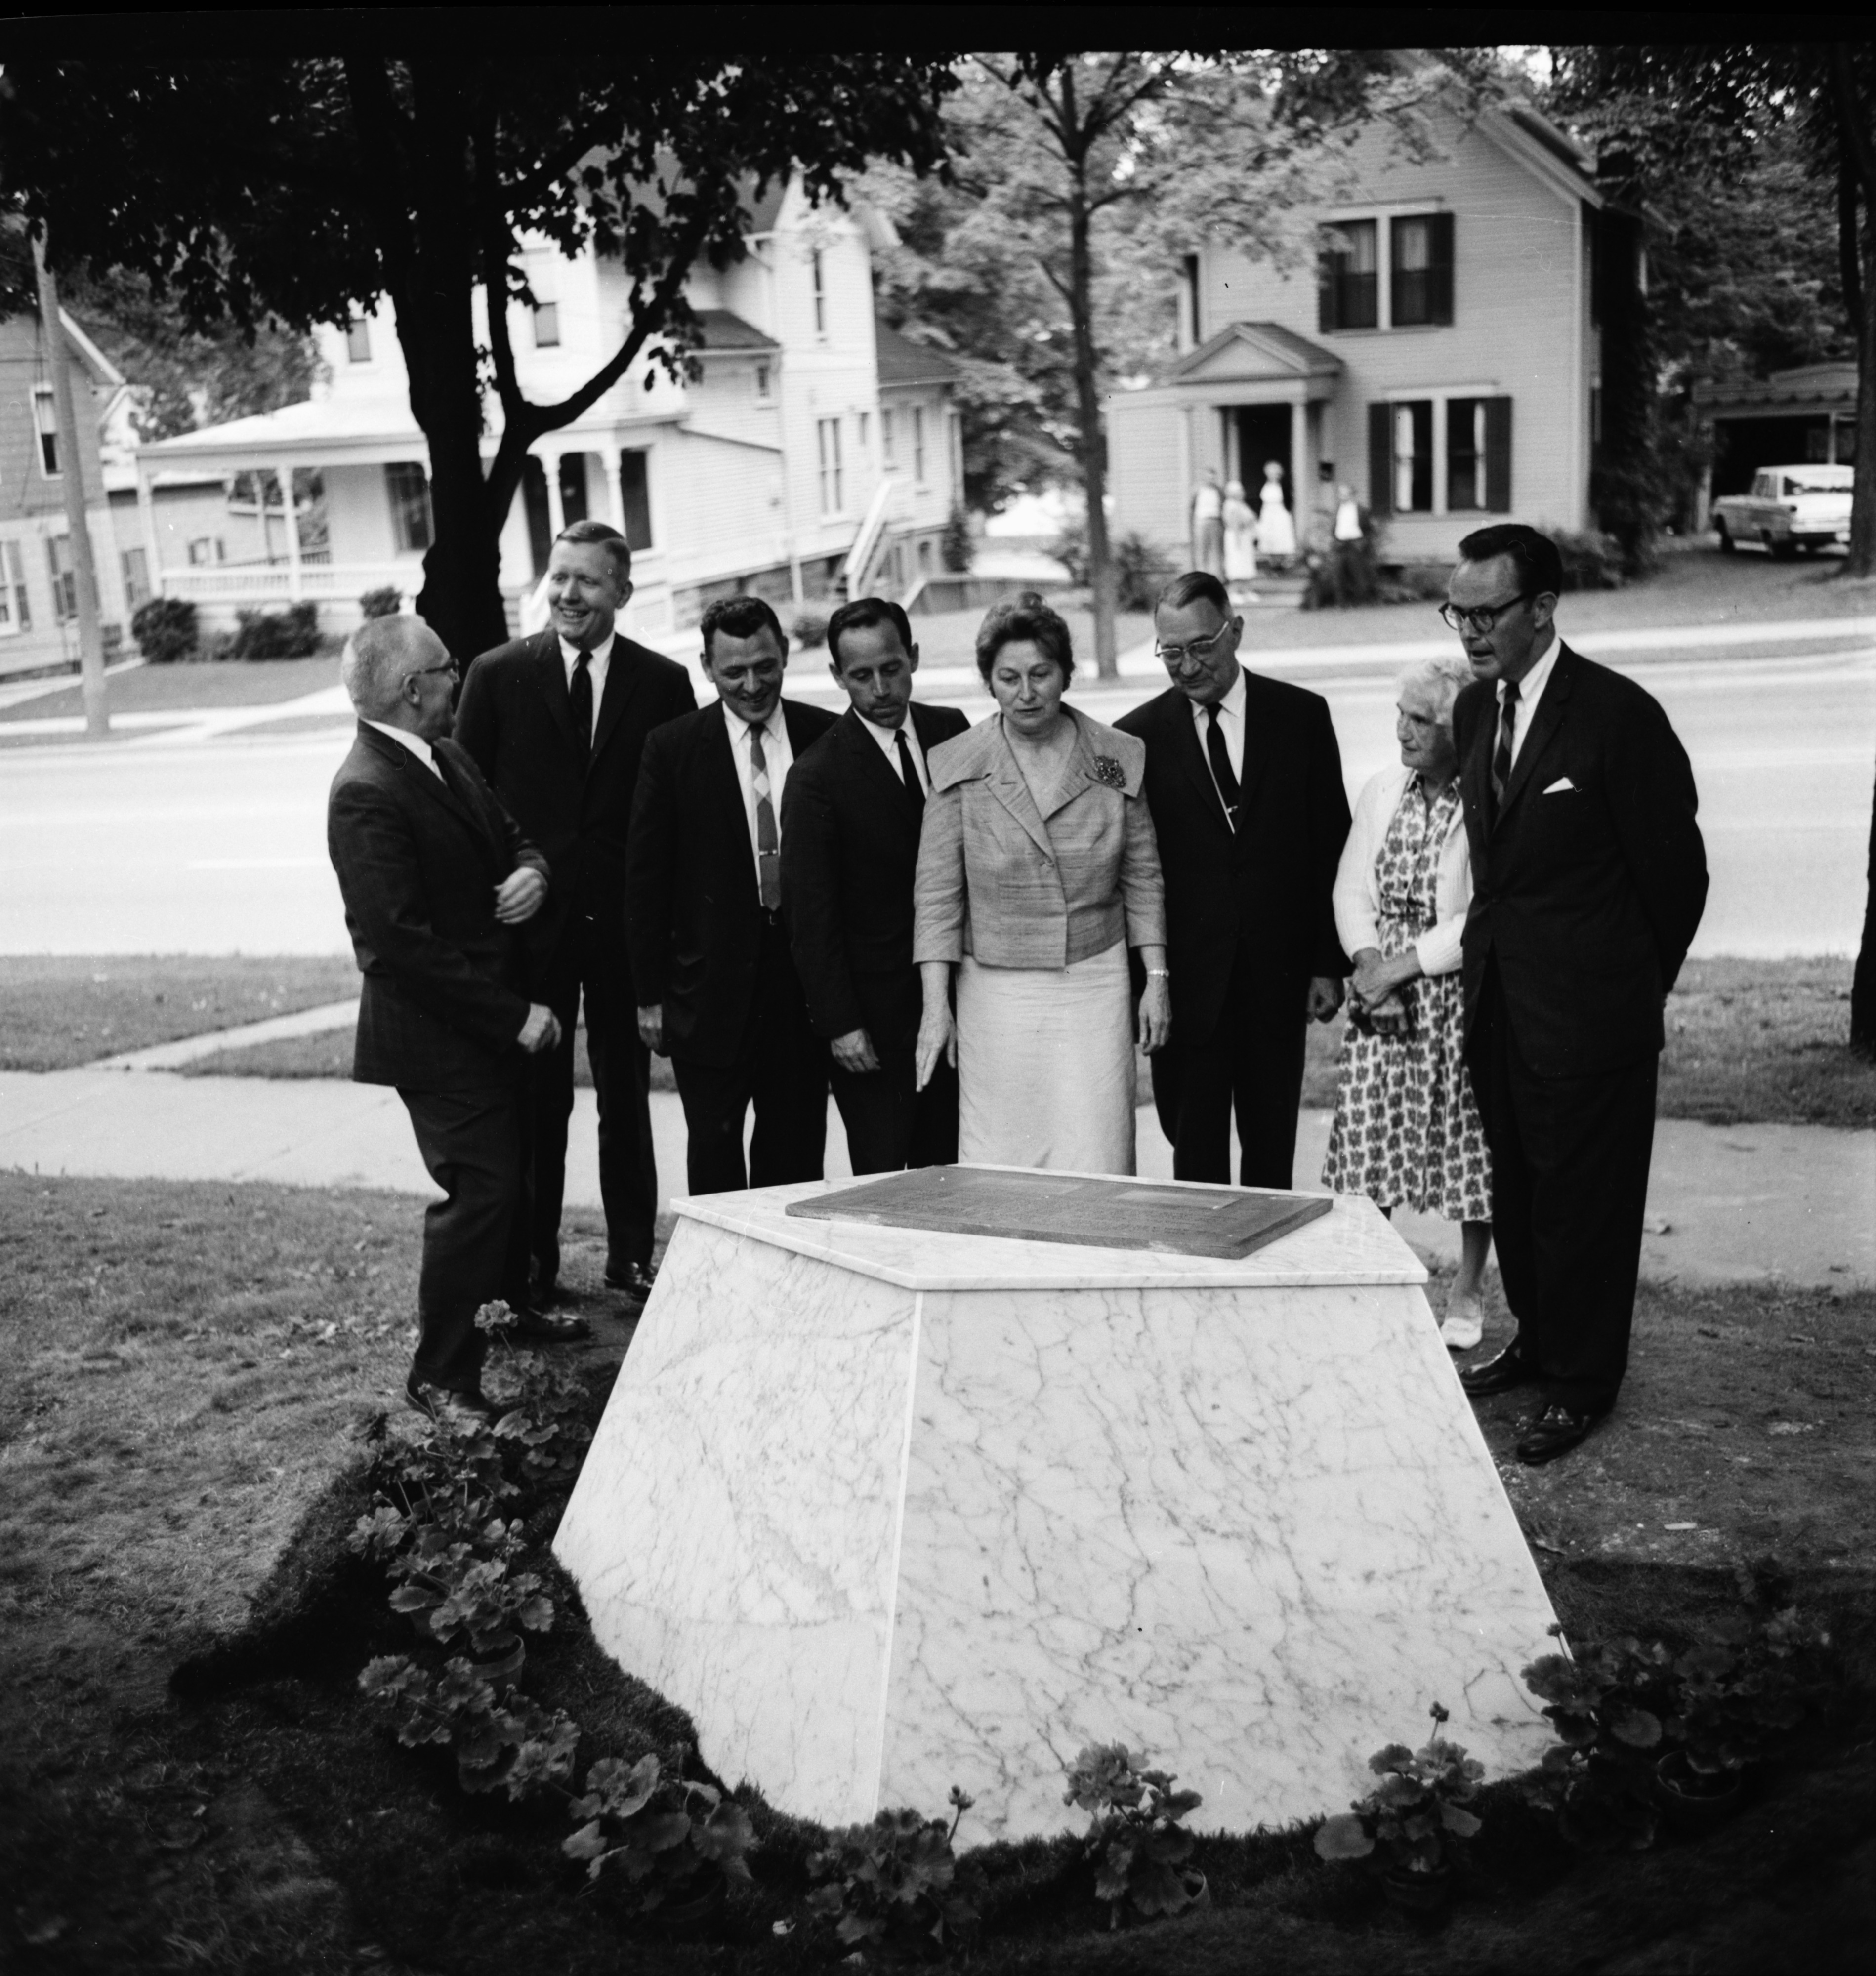 In front of the Time Capsule on Huron Street Lawn, June 1962 image